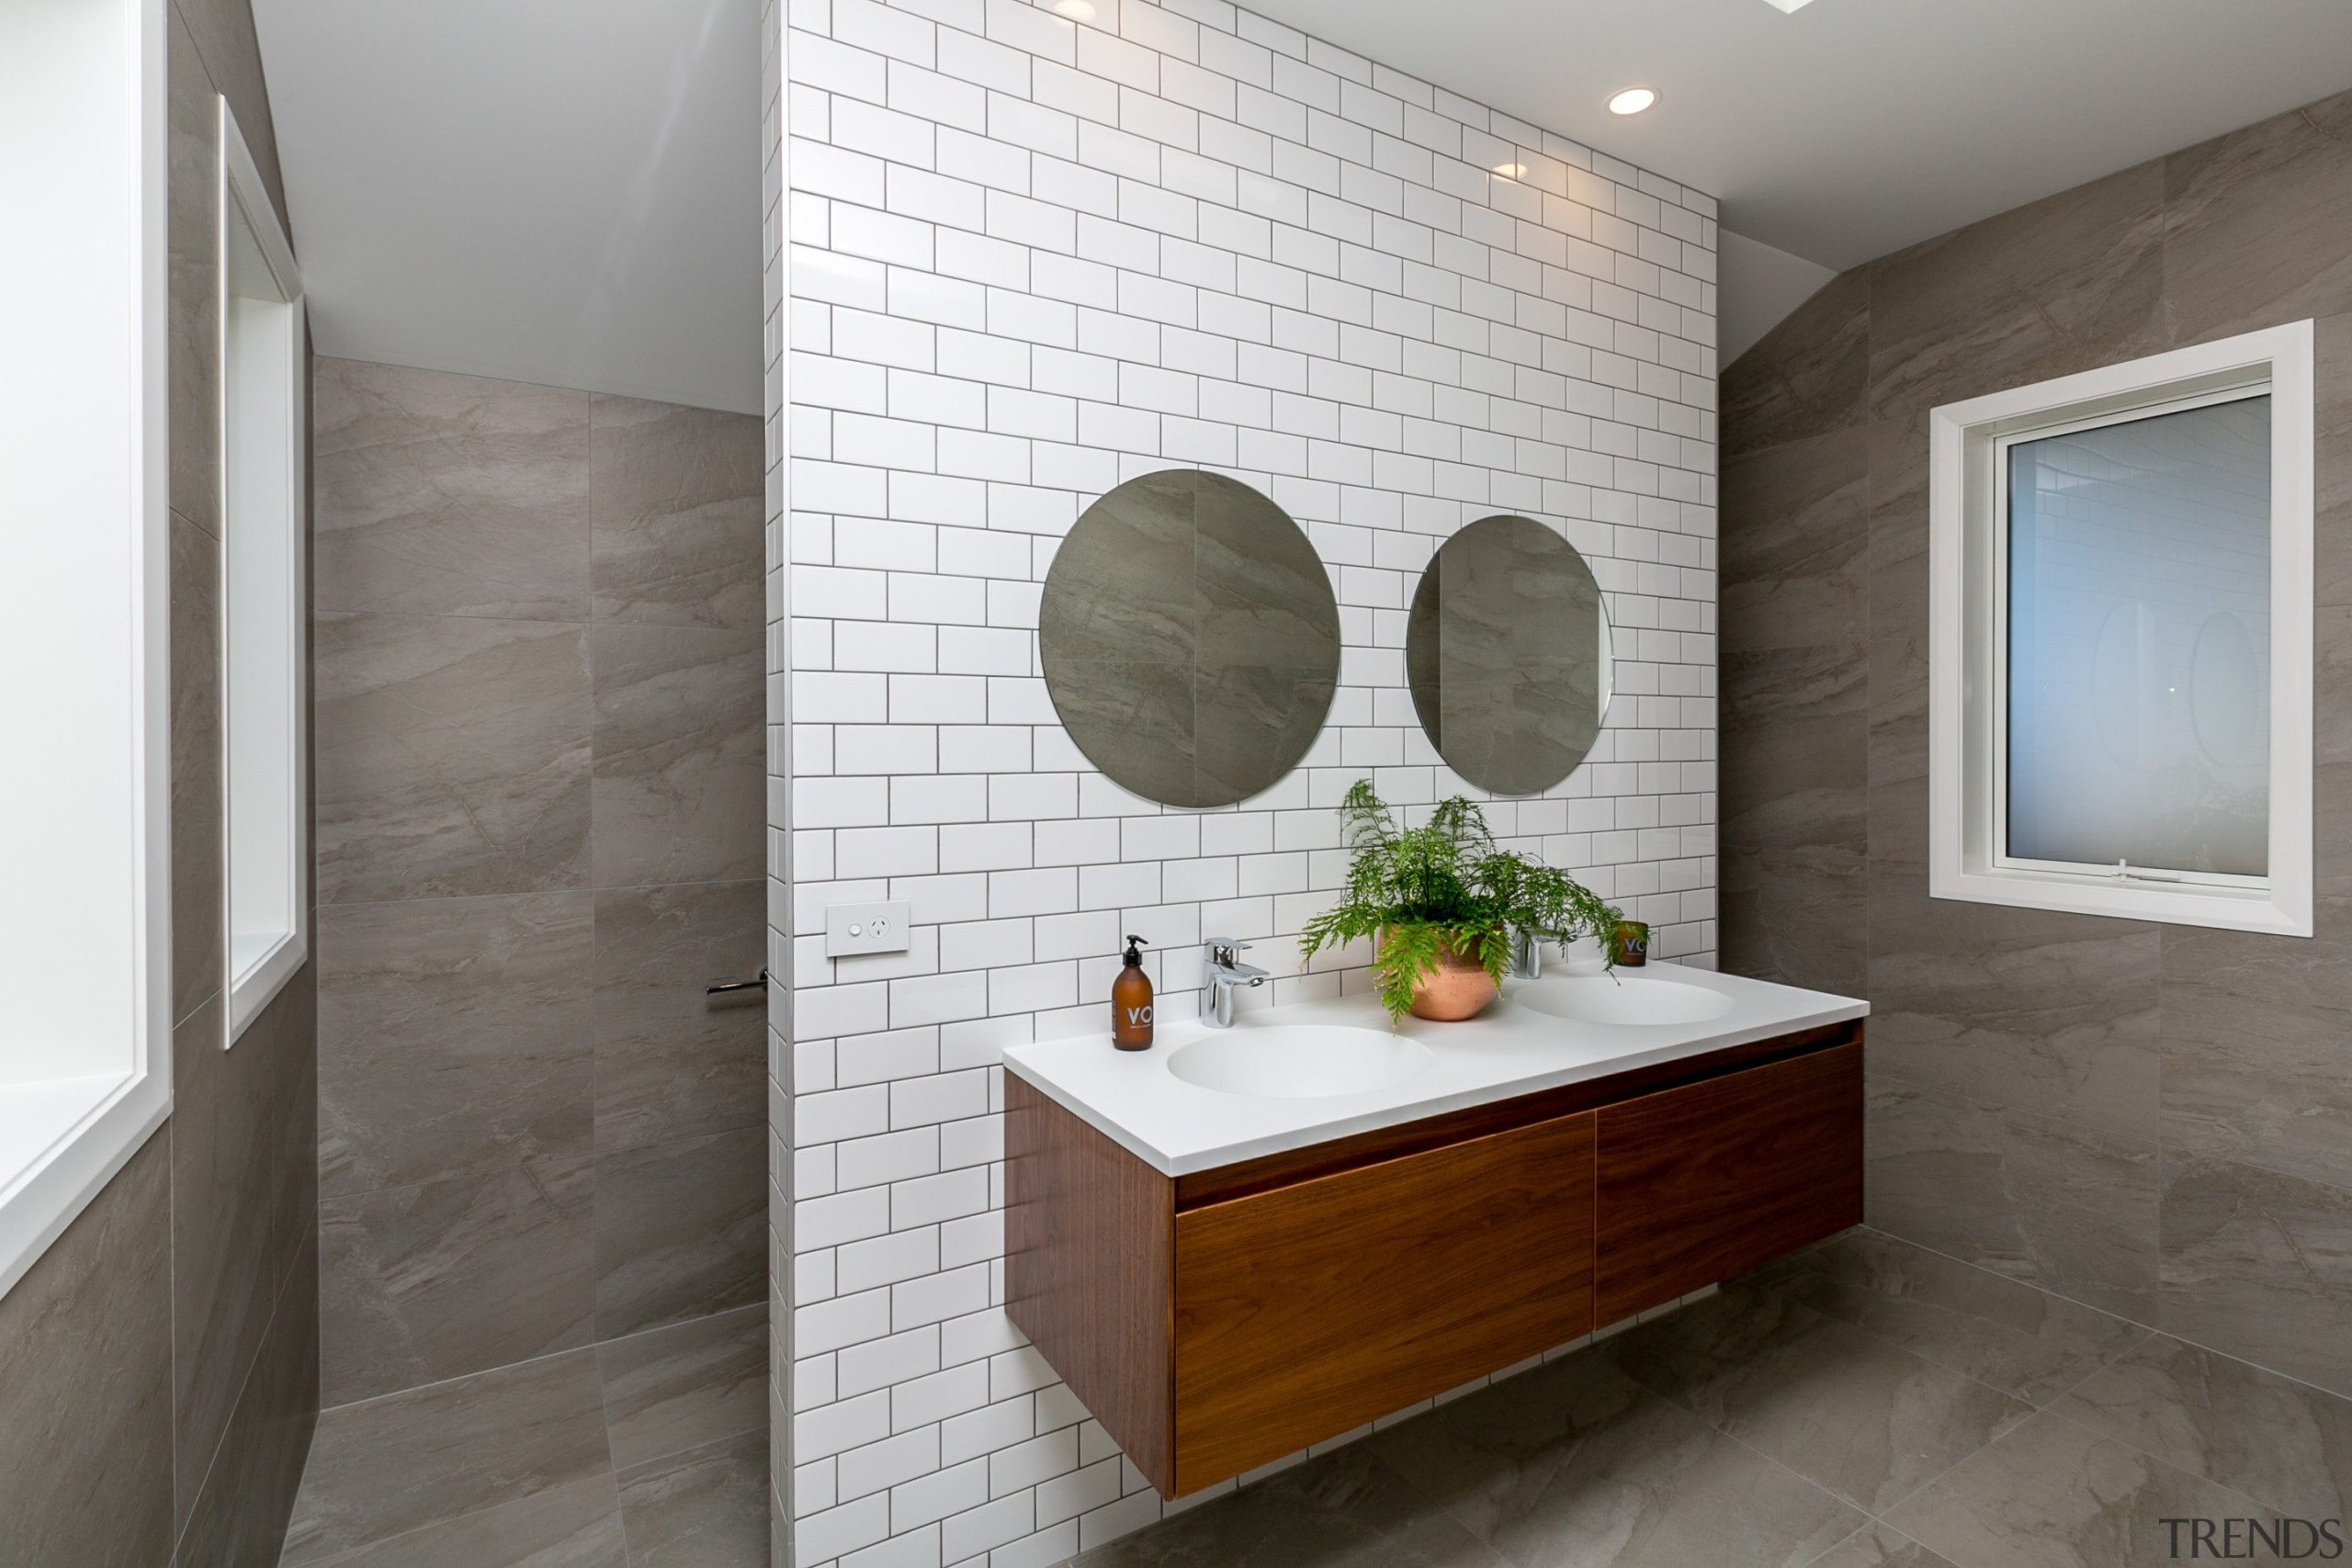 The Michel César Moode vanity looks fantastic mounted bathroom, floor, flooring, home, interior design, room, sink, tile, wall, gray